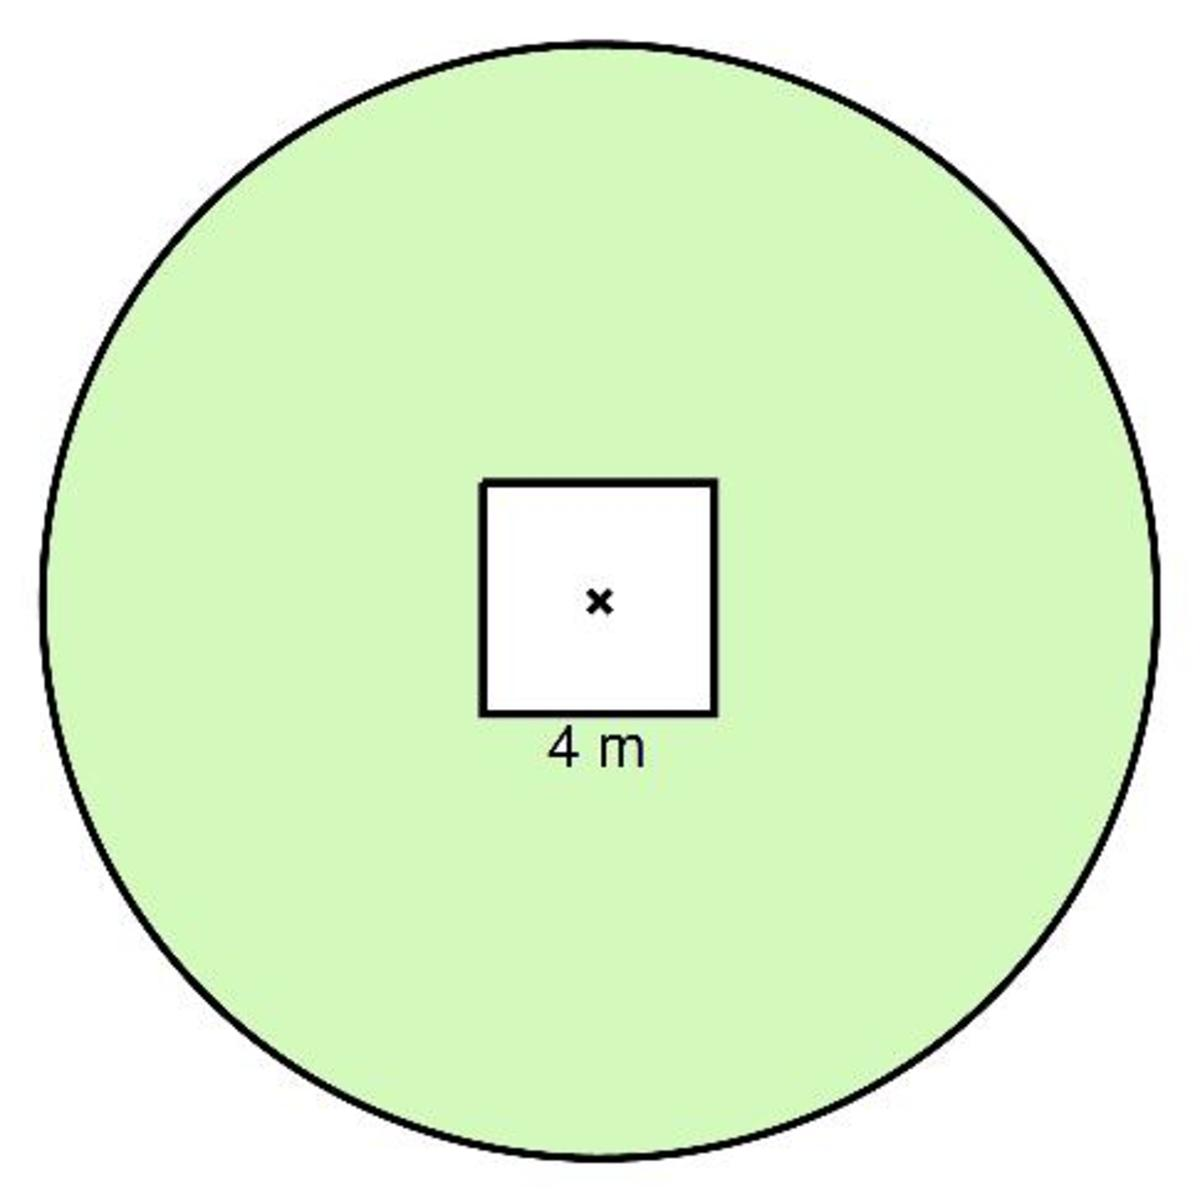 how-to-calculate-the-area-of-a-composite-or-compound-shape-rectangles-triangles-circles